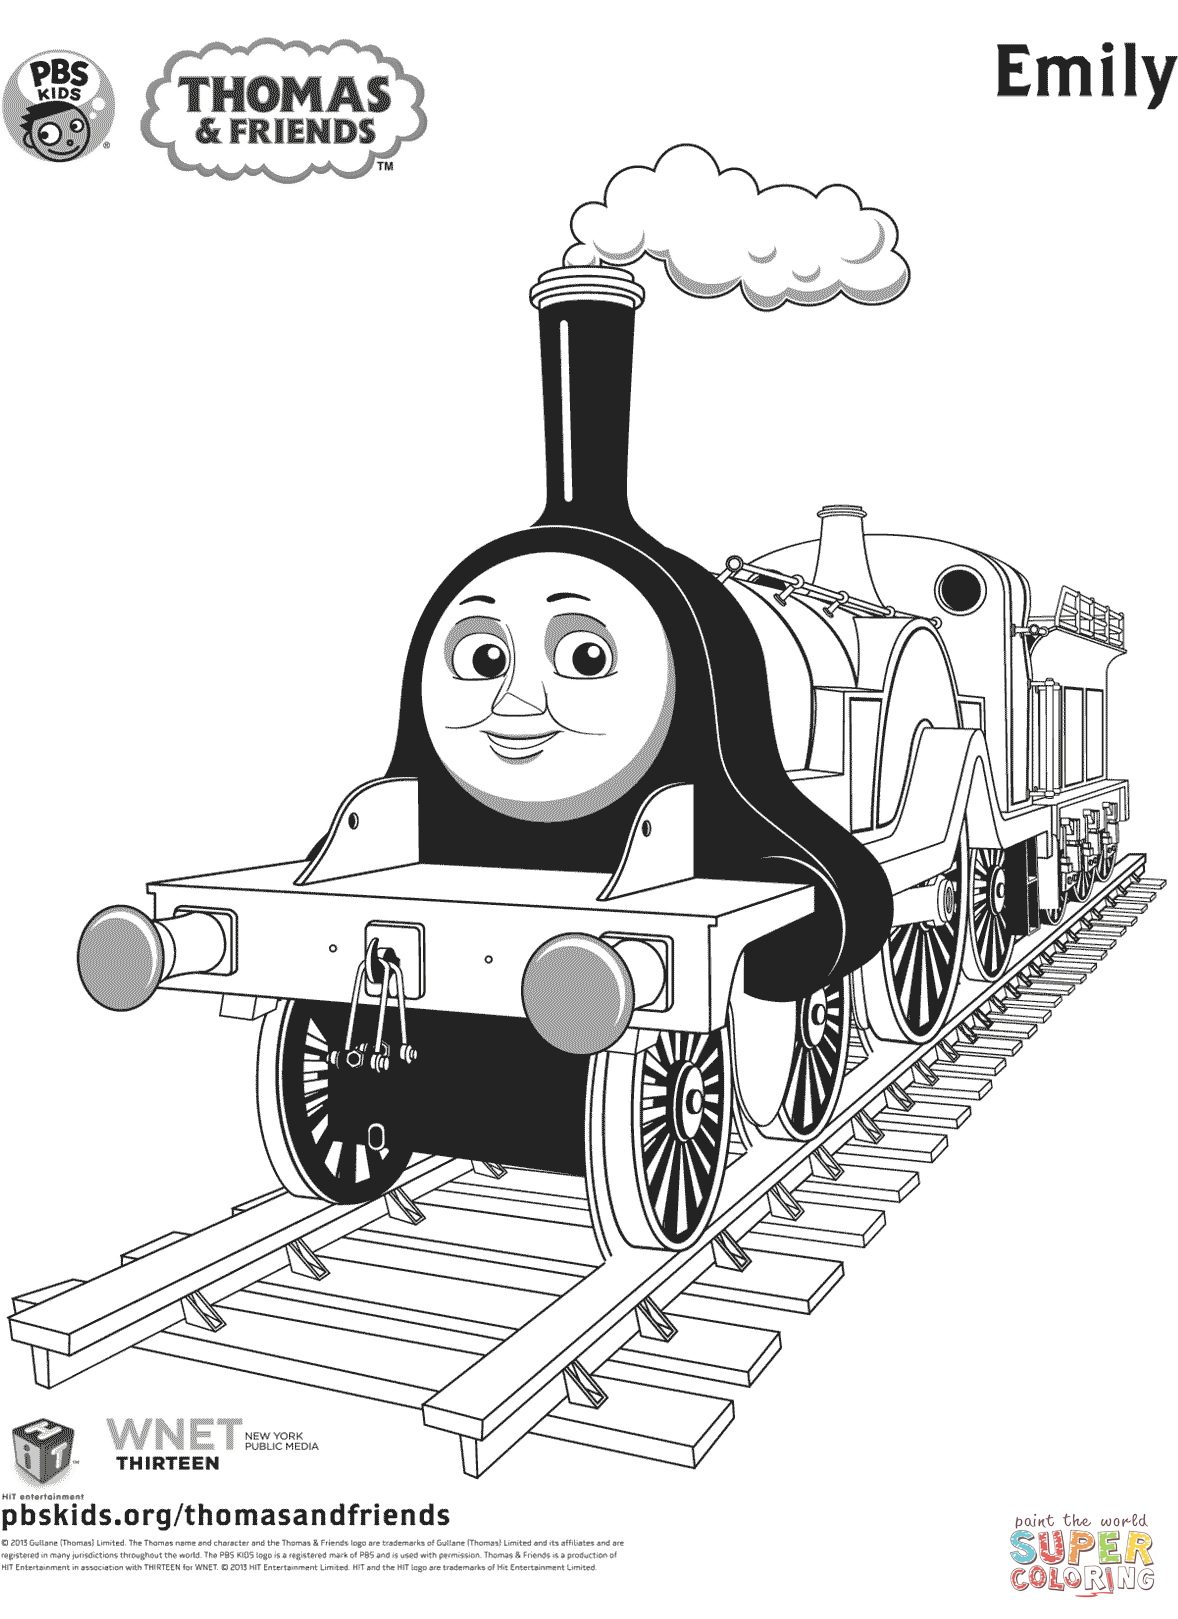 thomas and friends coloring pages thomas the train drawing at getdrawings free download coloring pages friends thomas and